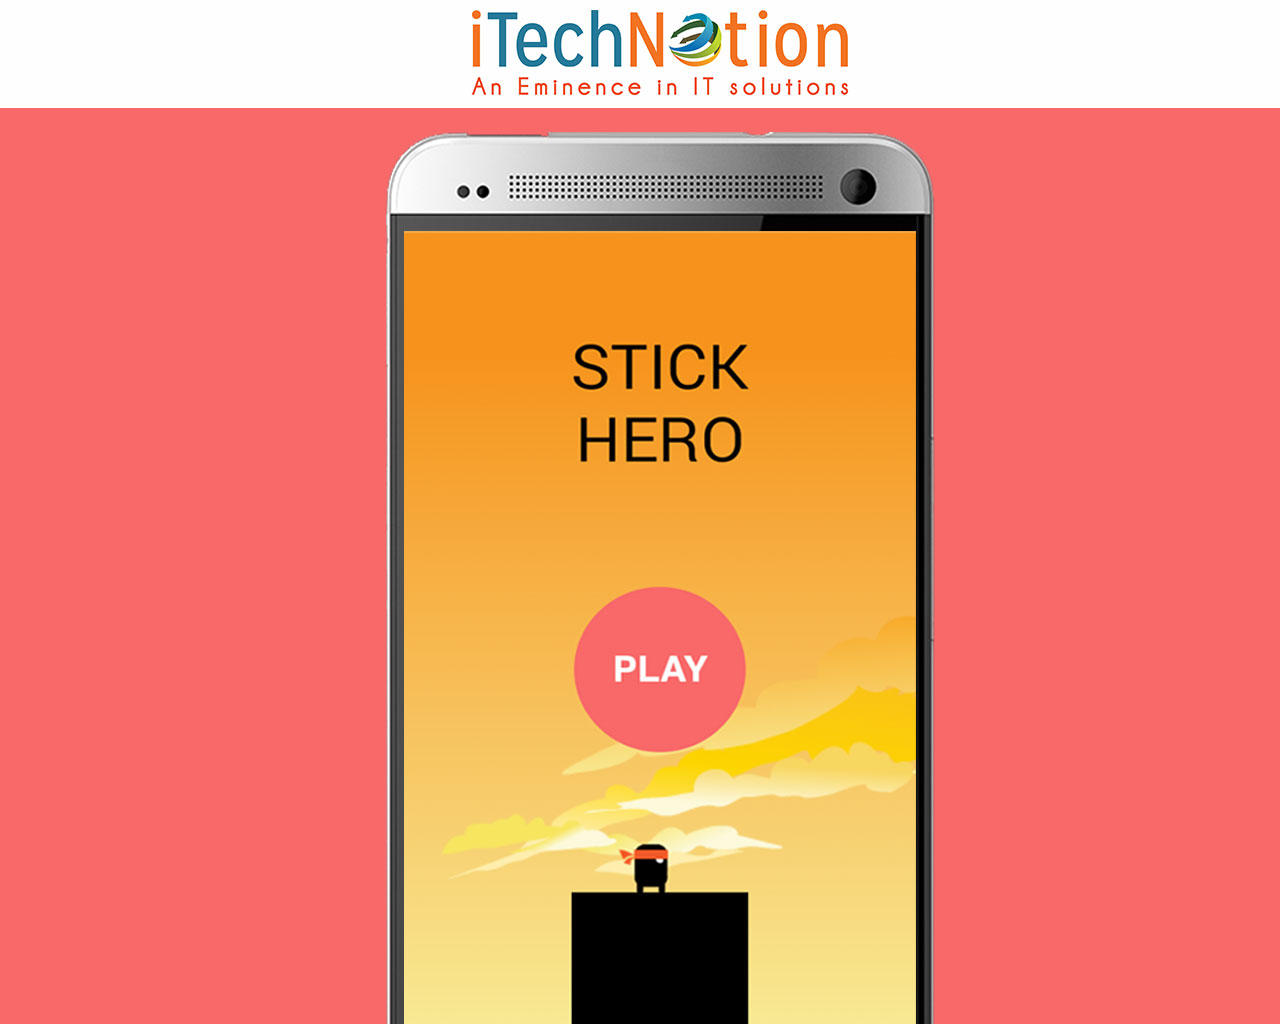 Reskin Android or IOS game purchased from Codecanyon by itechnotion - 78355